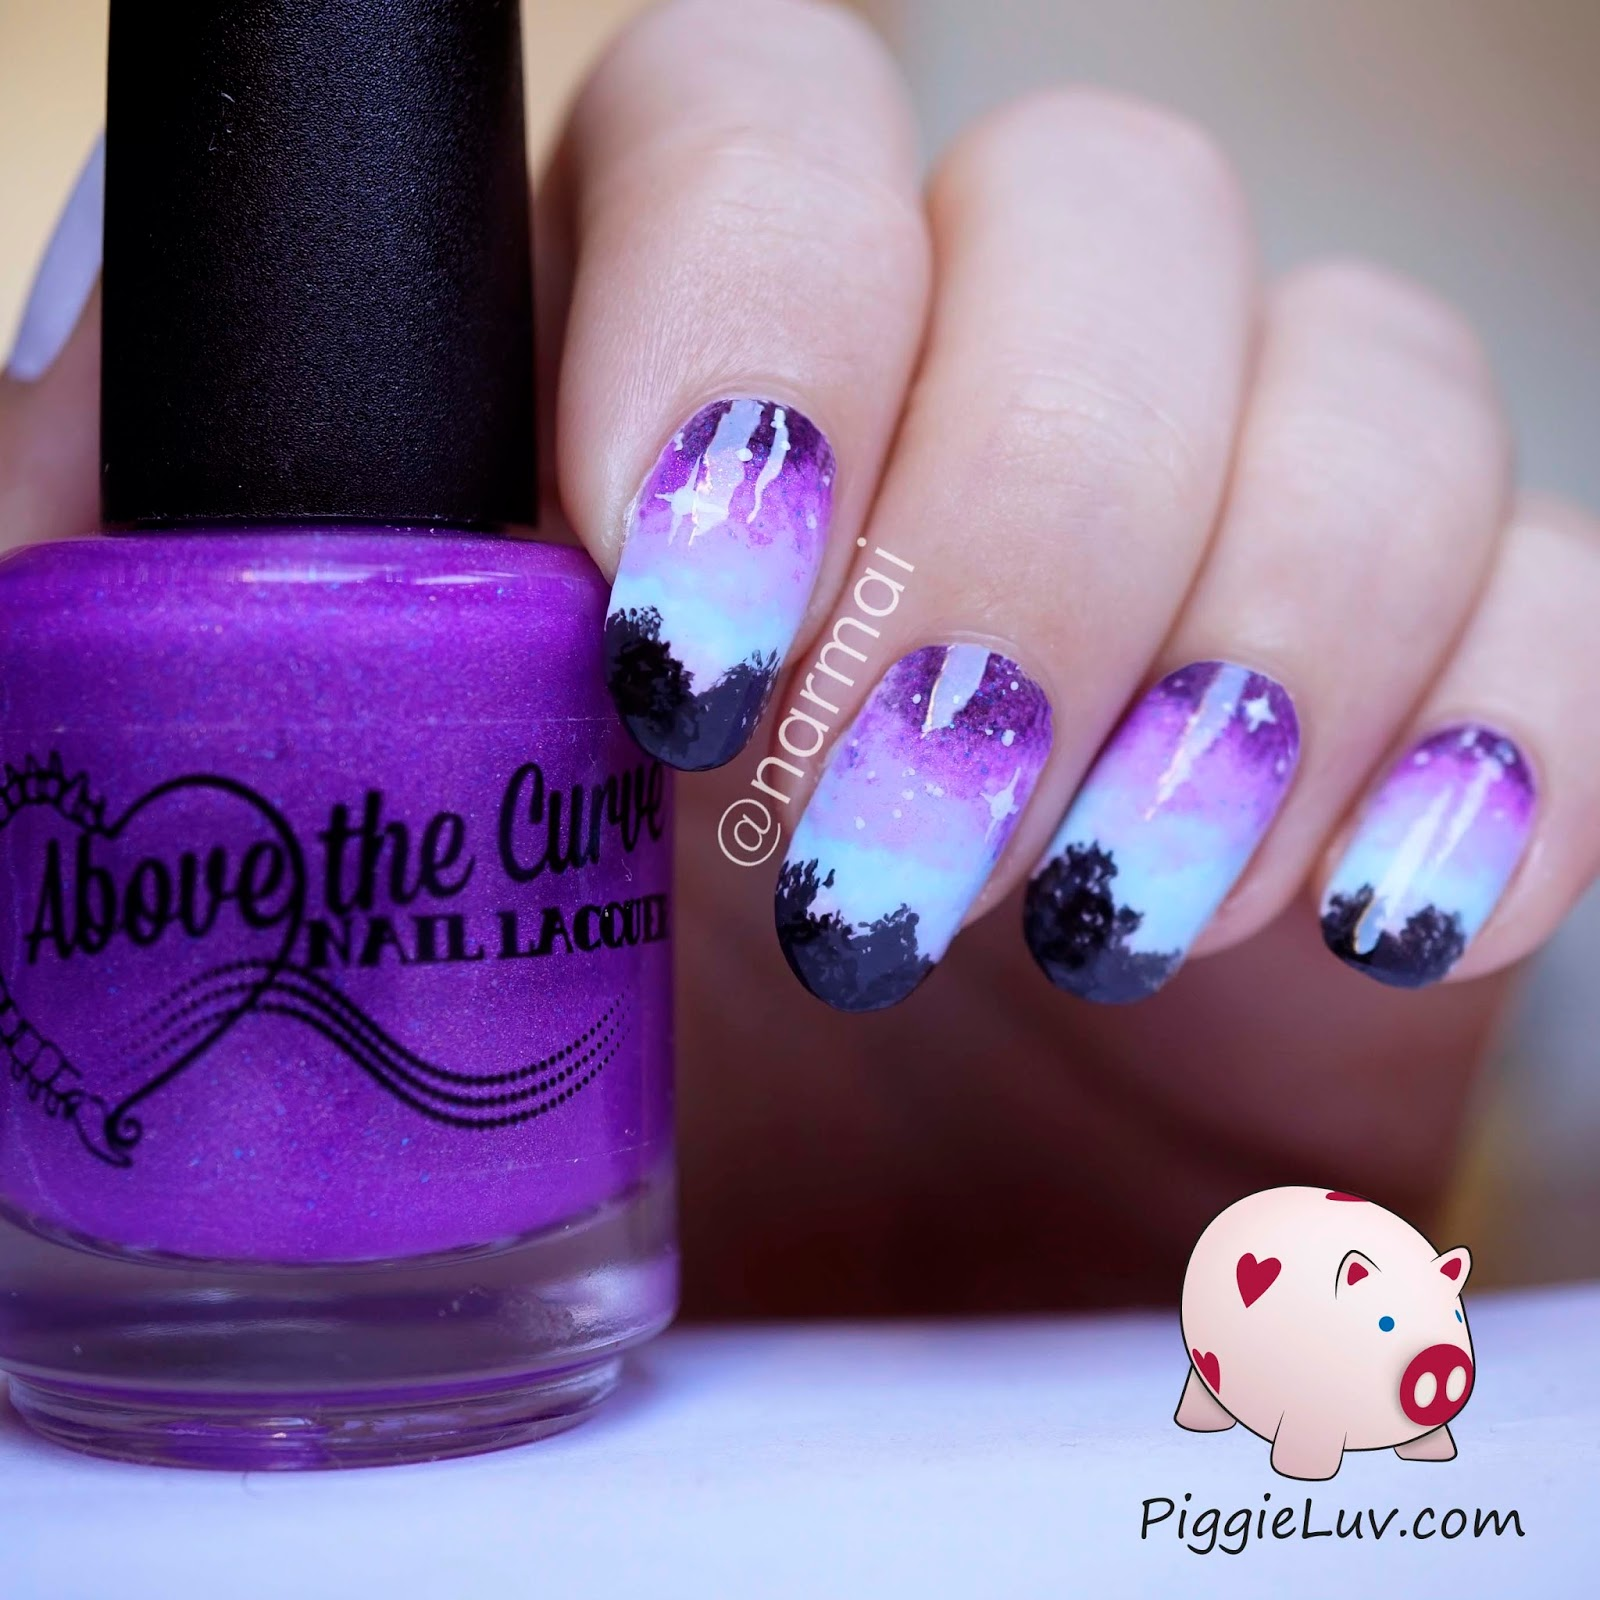 piggieluv over the tree tops glow in the dark nail art